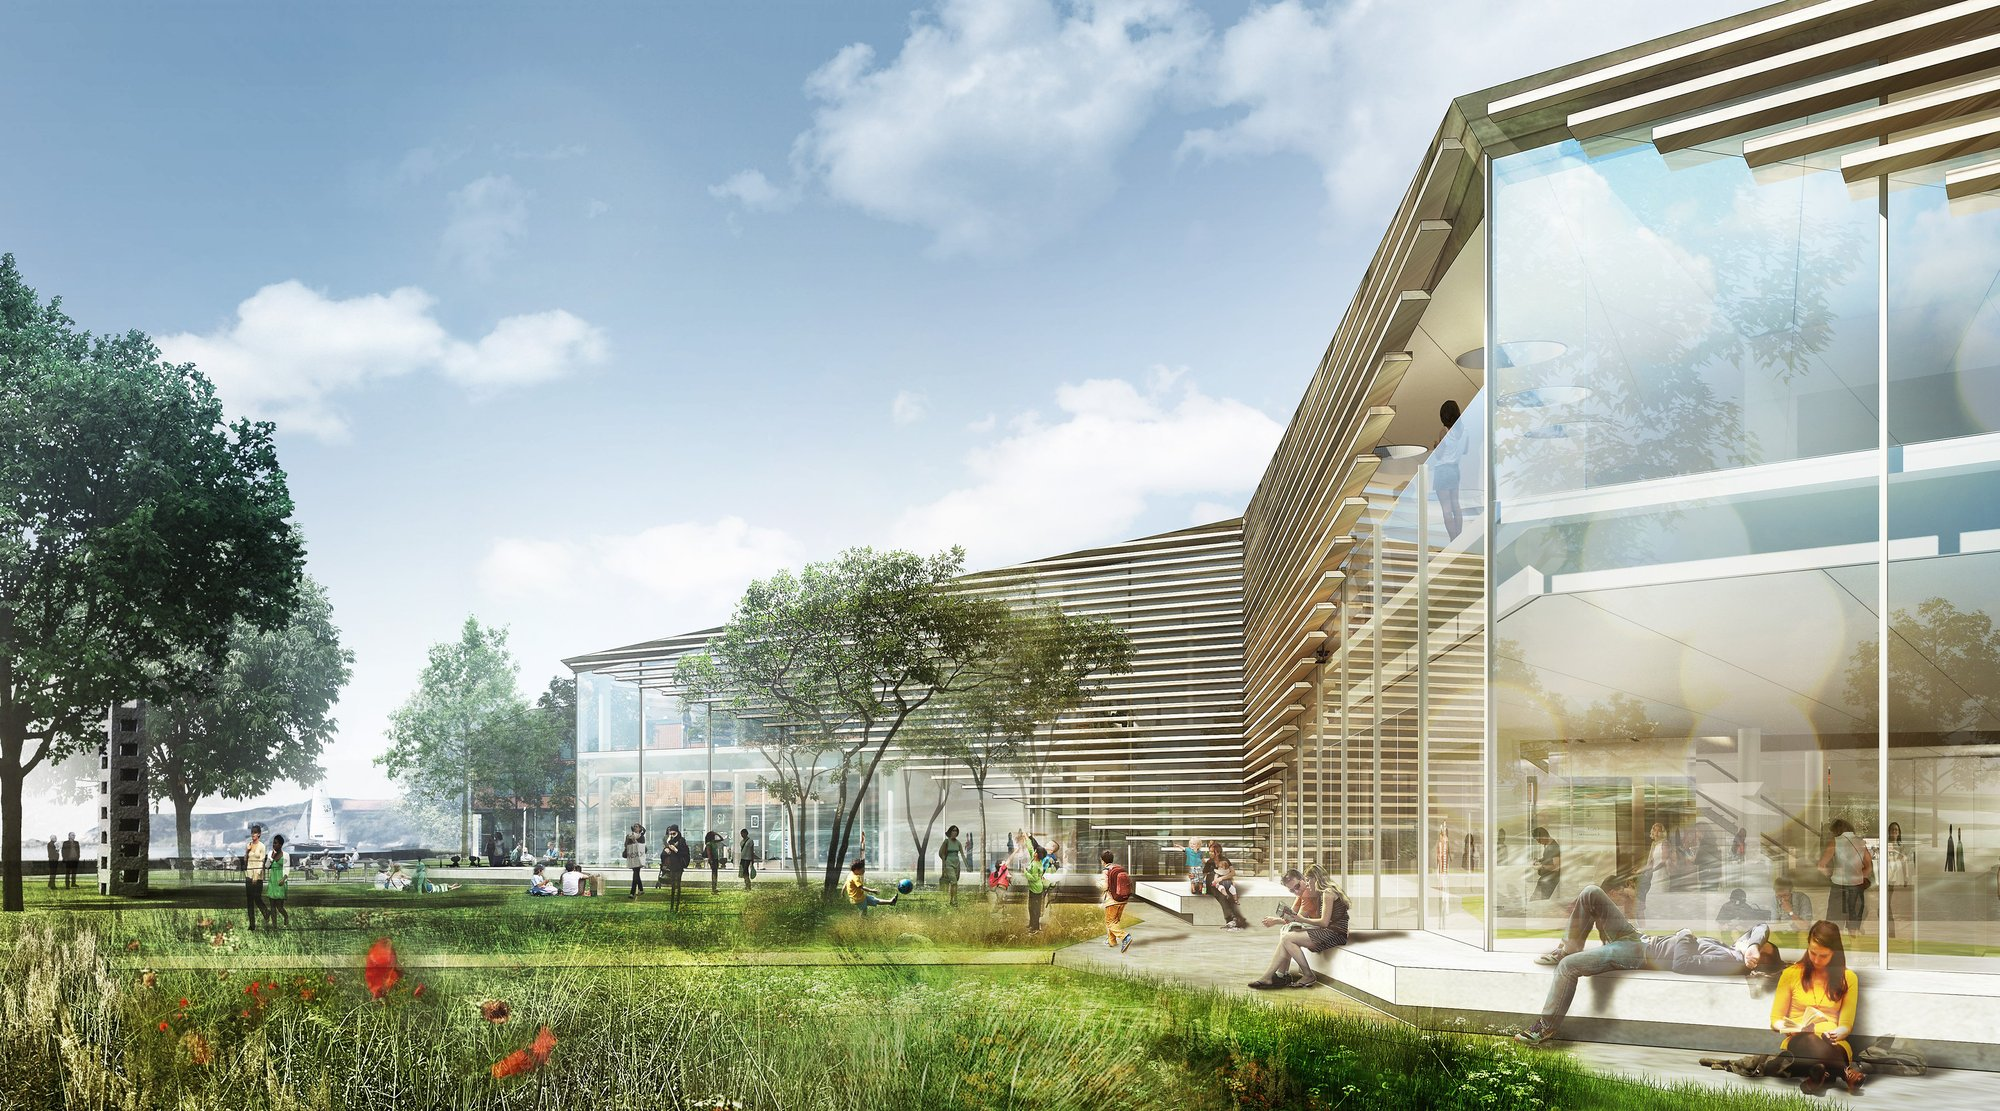 Gallery of New Culture Centre and Library Winning Proposal